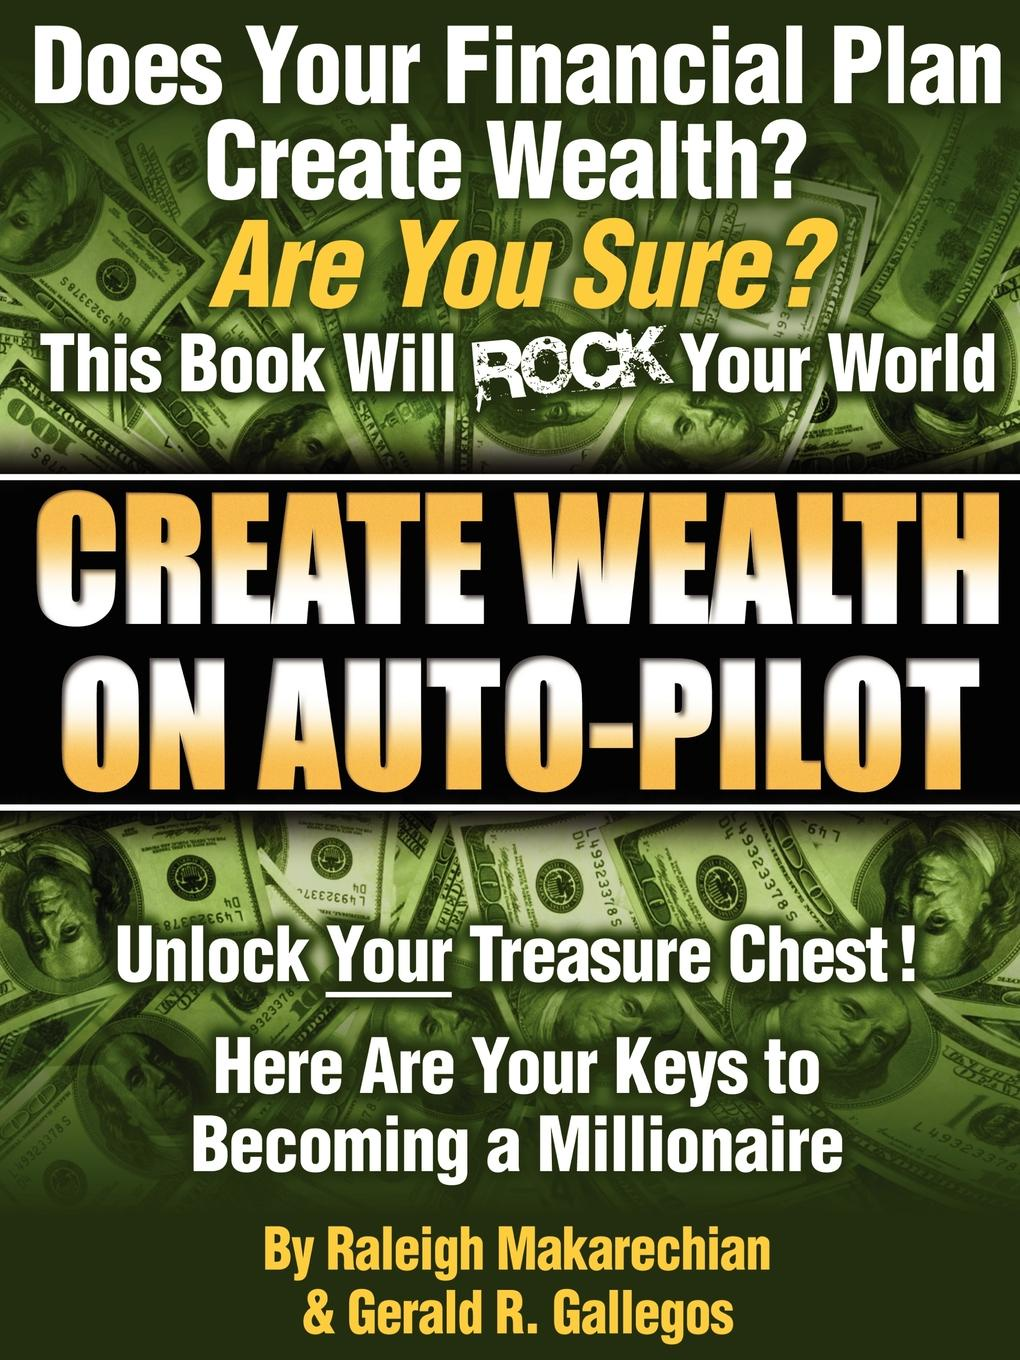 лучшая цена Raleigh Makarechian, Gerald R. Gallegos Create Wealth On Auto-Pilot